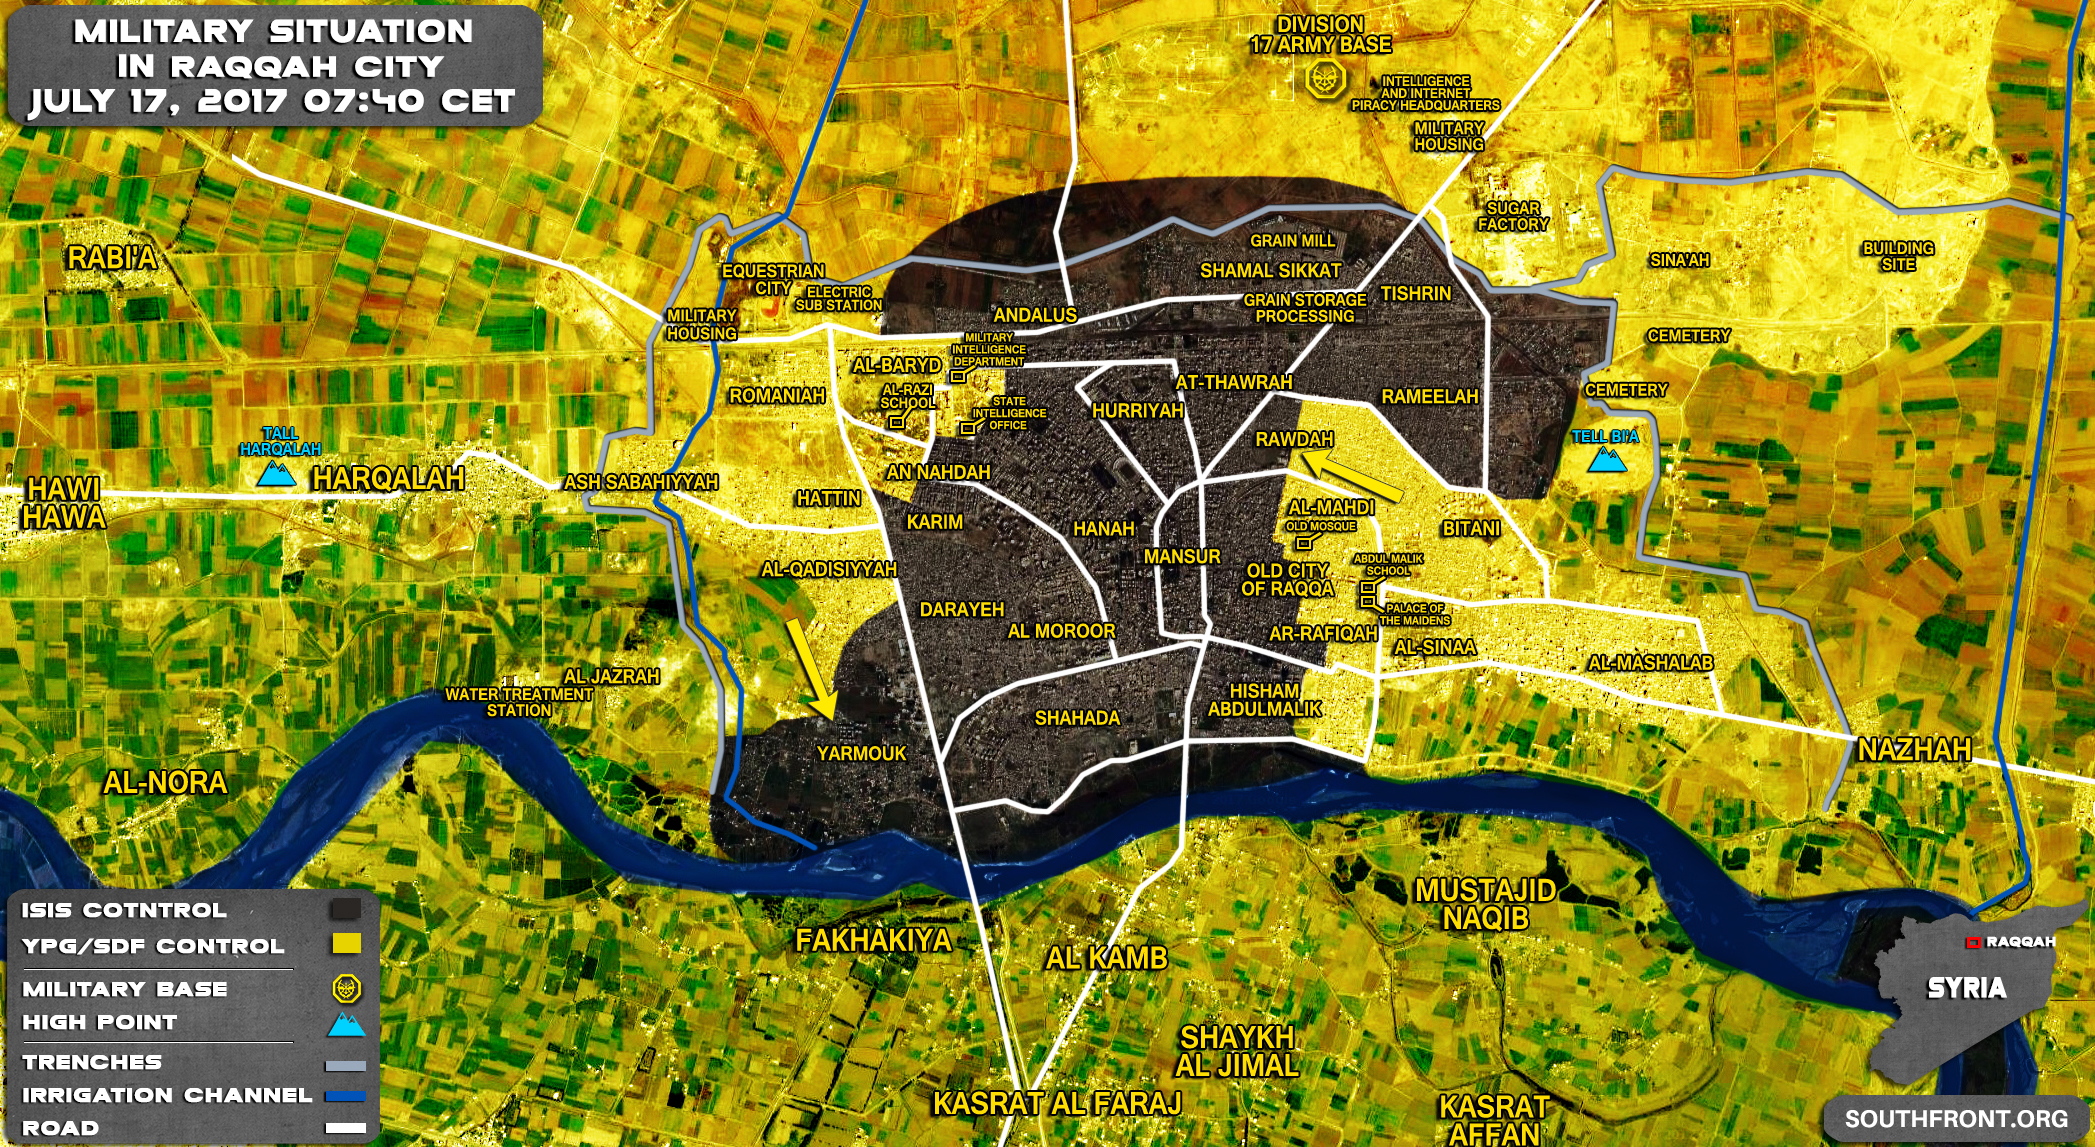 17july_07_40_Raqqah_city_Syria_War_Map